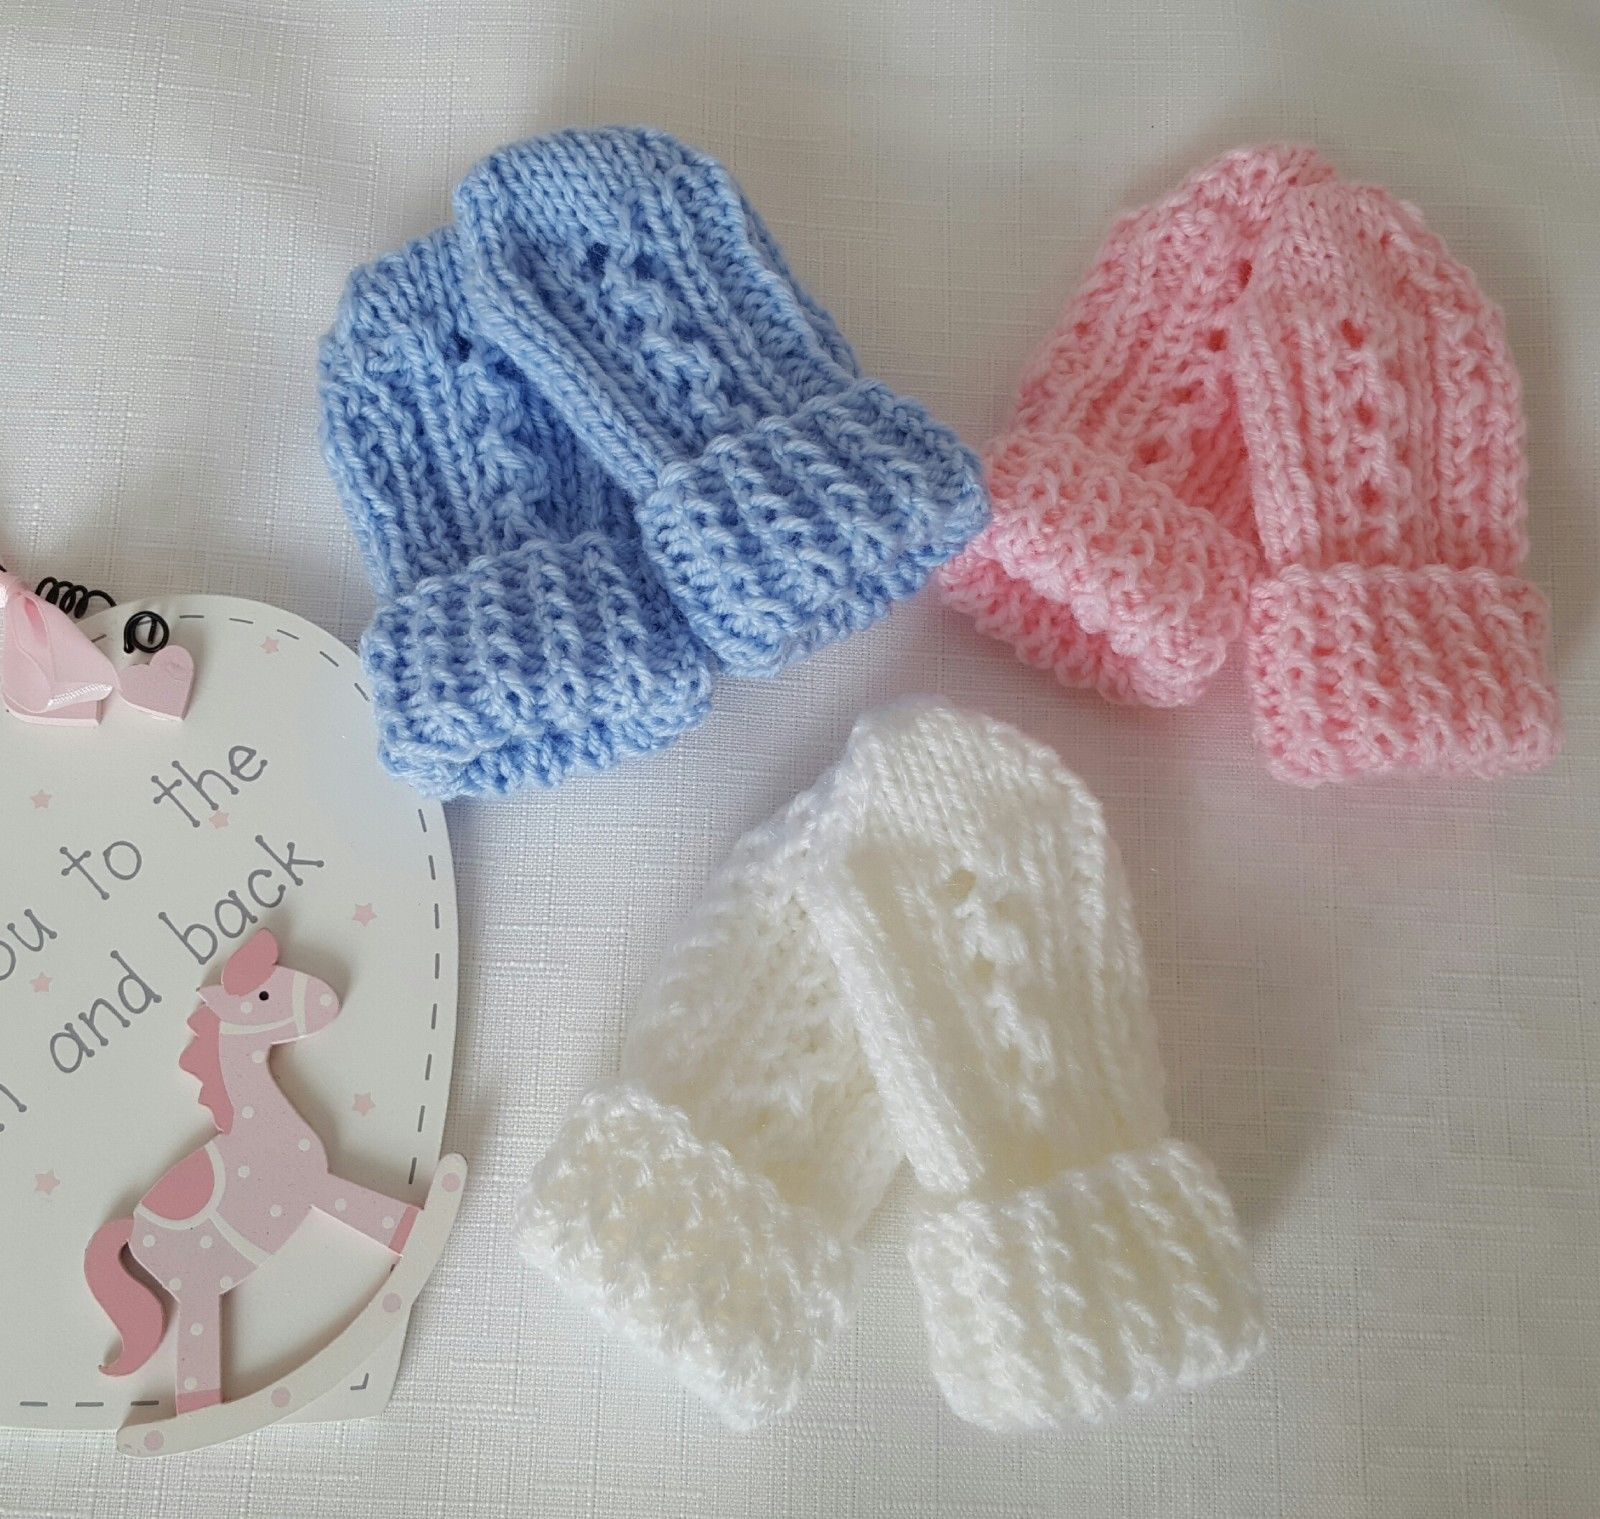 Knitting Pattern DK 68 TO KNIT Baby Thumbless Mittens in ...